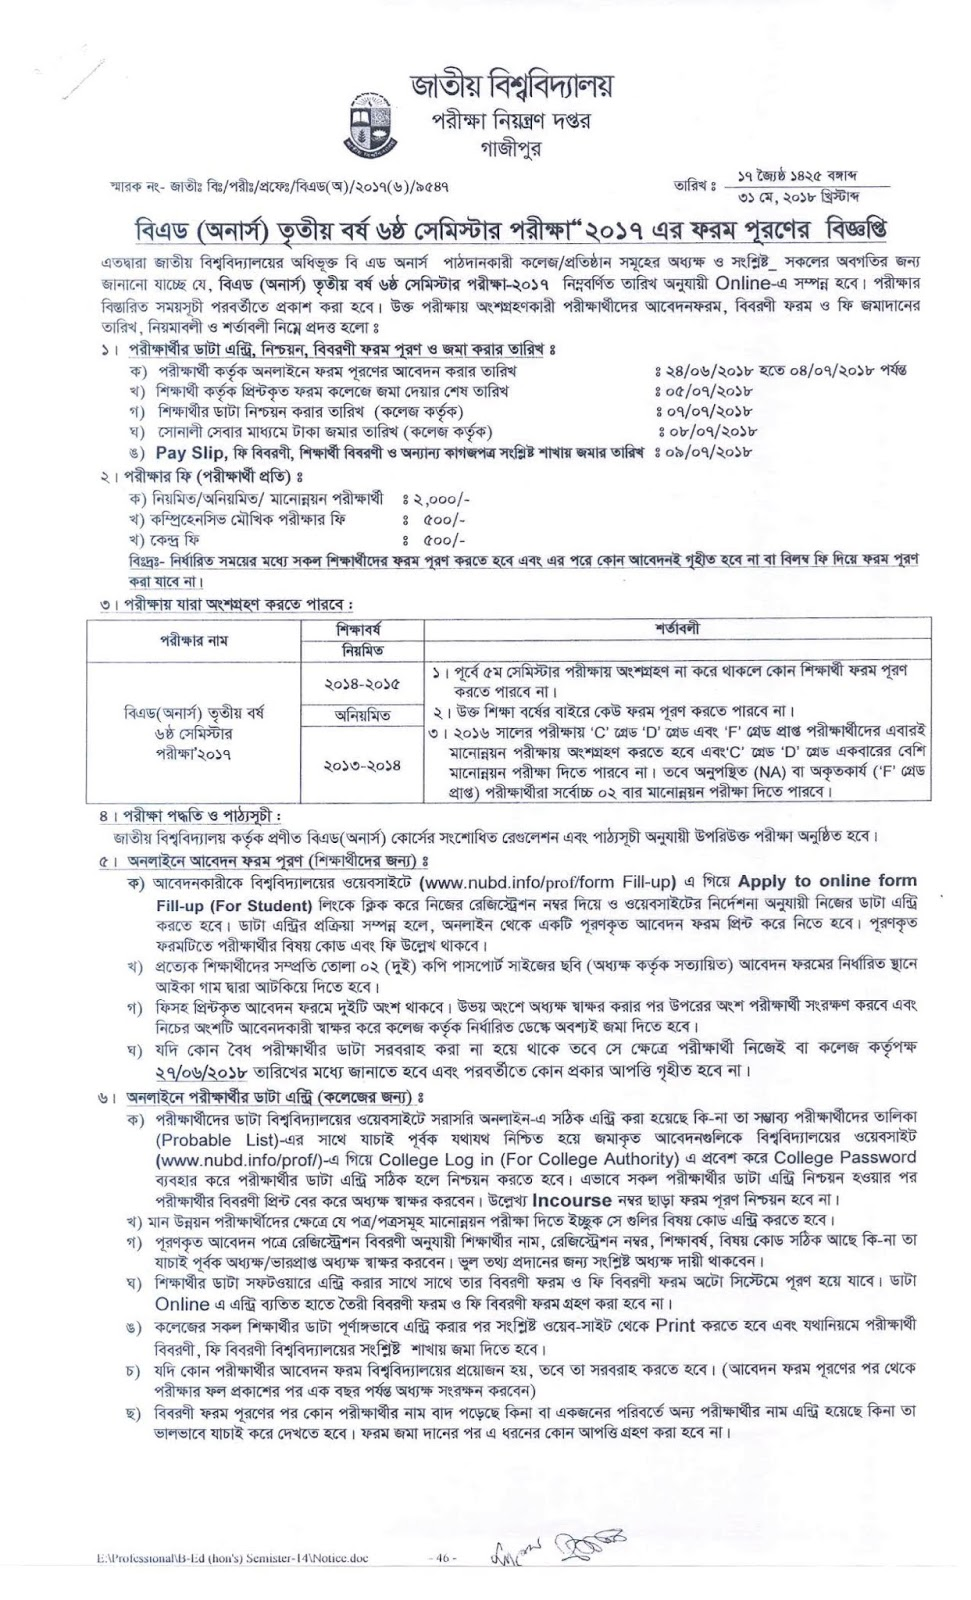 Nu edu B.Ed hons  Exam 2017 Form Fillup Notice 2018